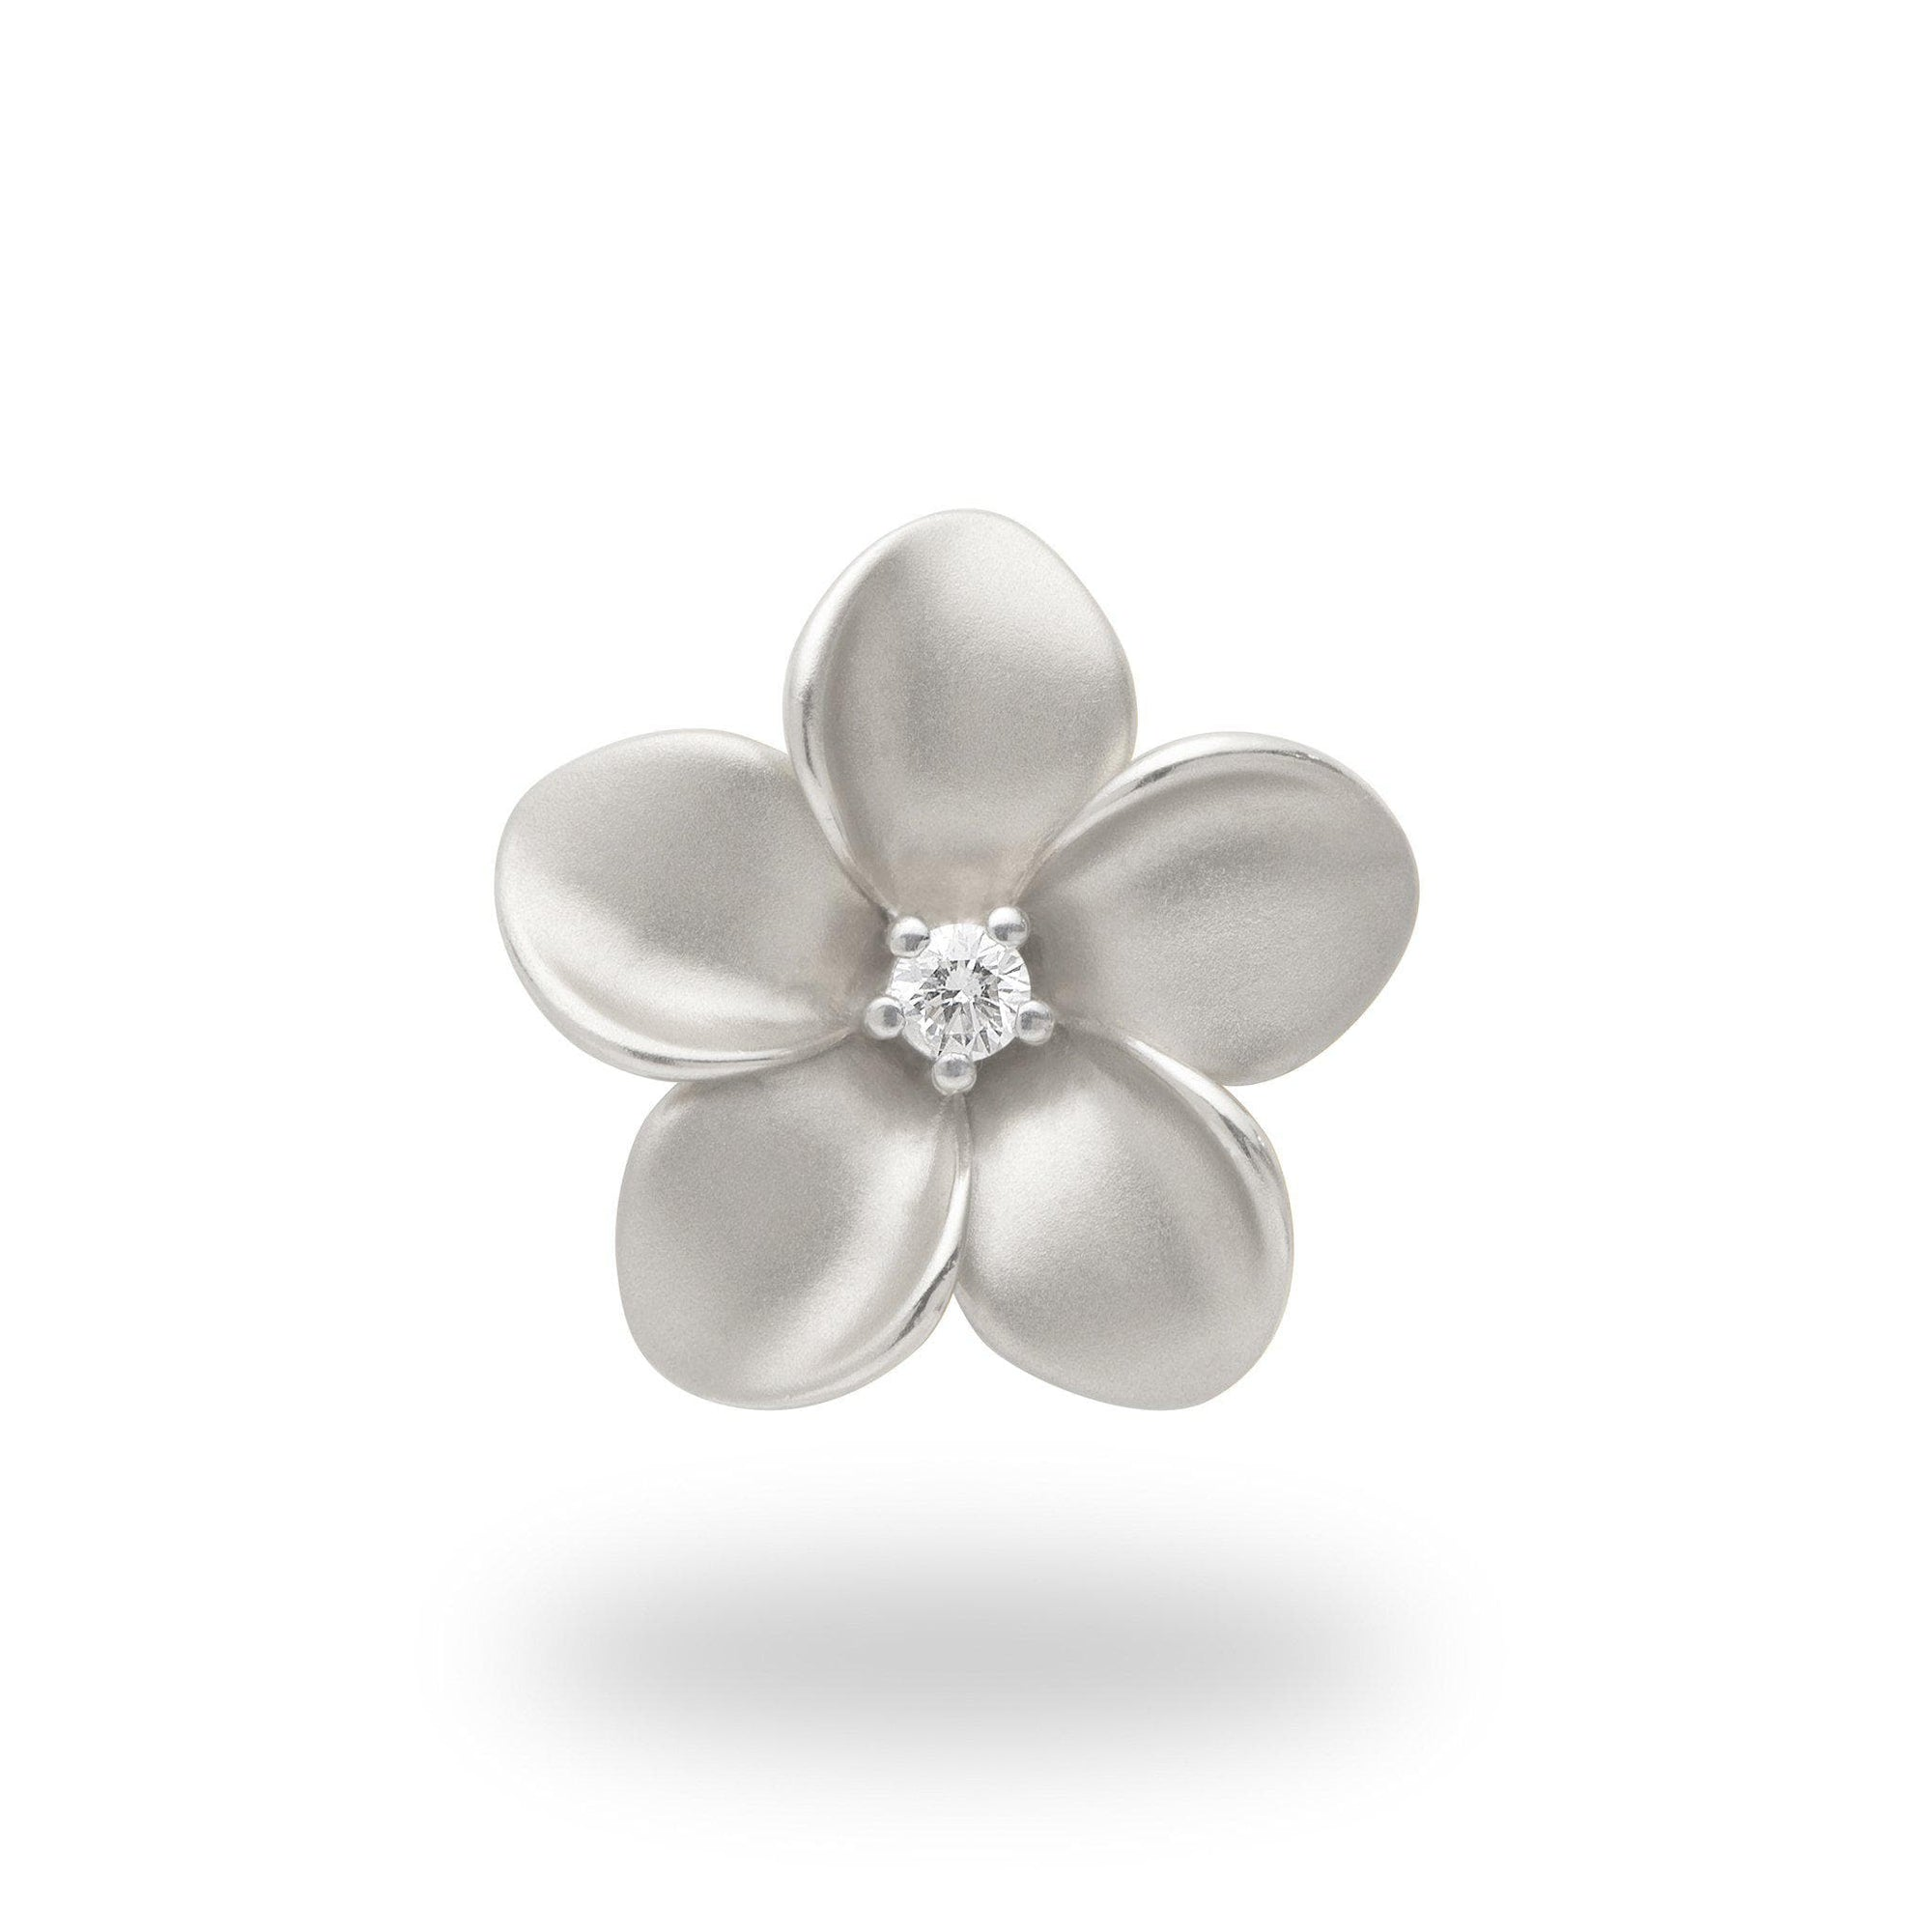 Plumeria Pendant in White Gold with Diamond - 20mm-[SKU]